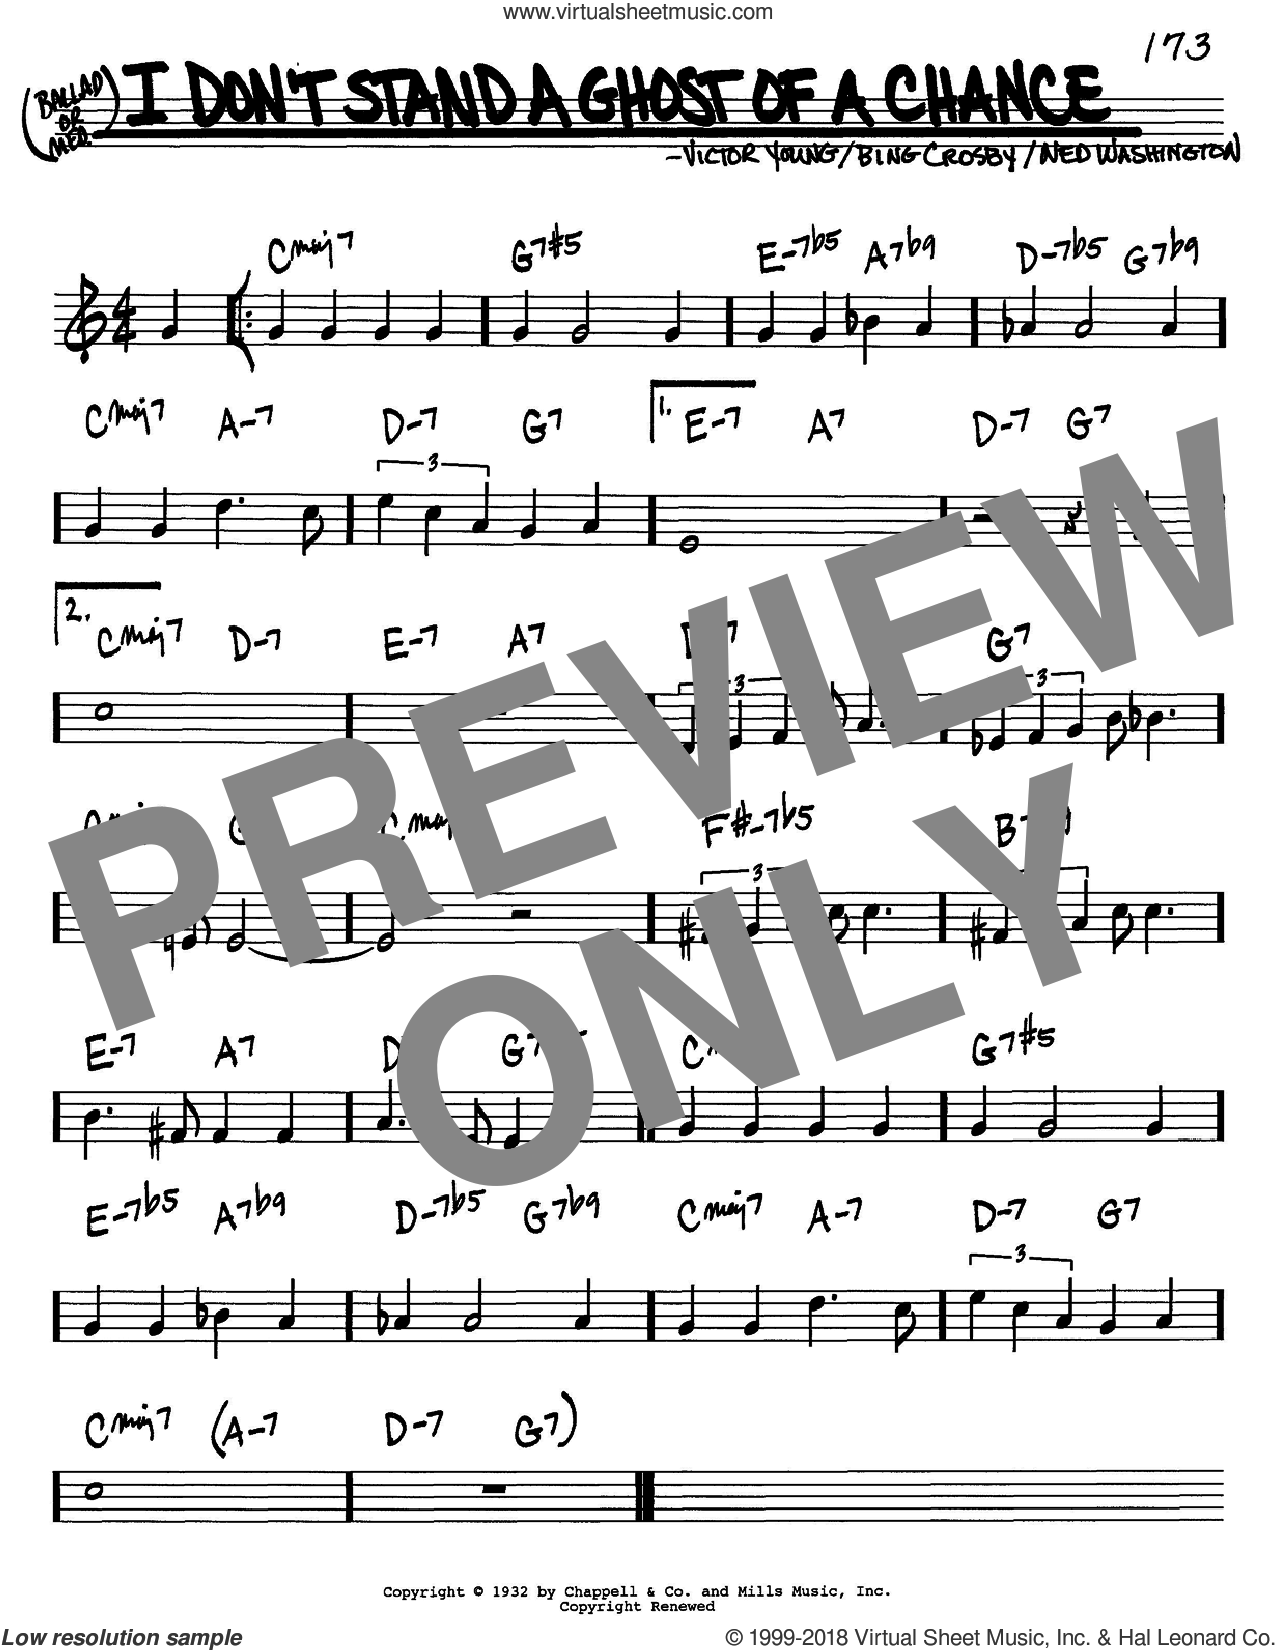 I Don't Stand A Ghost Of A Chance sheet music for voice and other instruments (in C) by Bing Crosby, Ned Washington and Victor Young, intermediate skill level